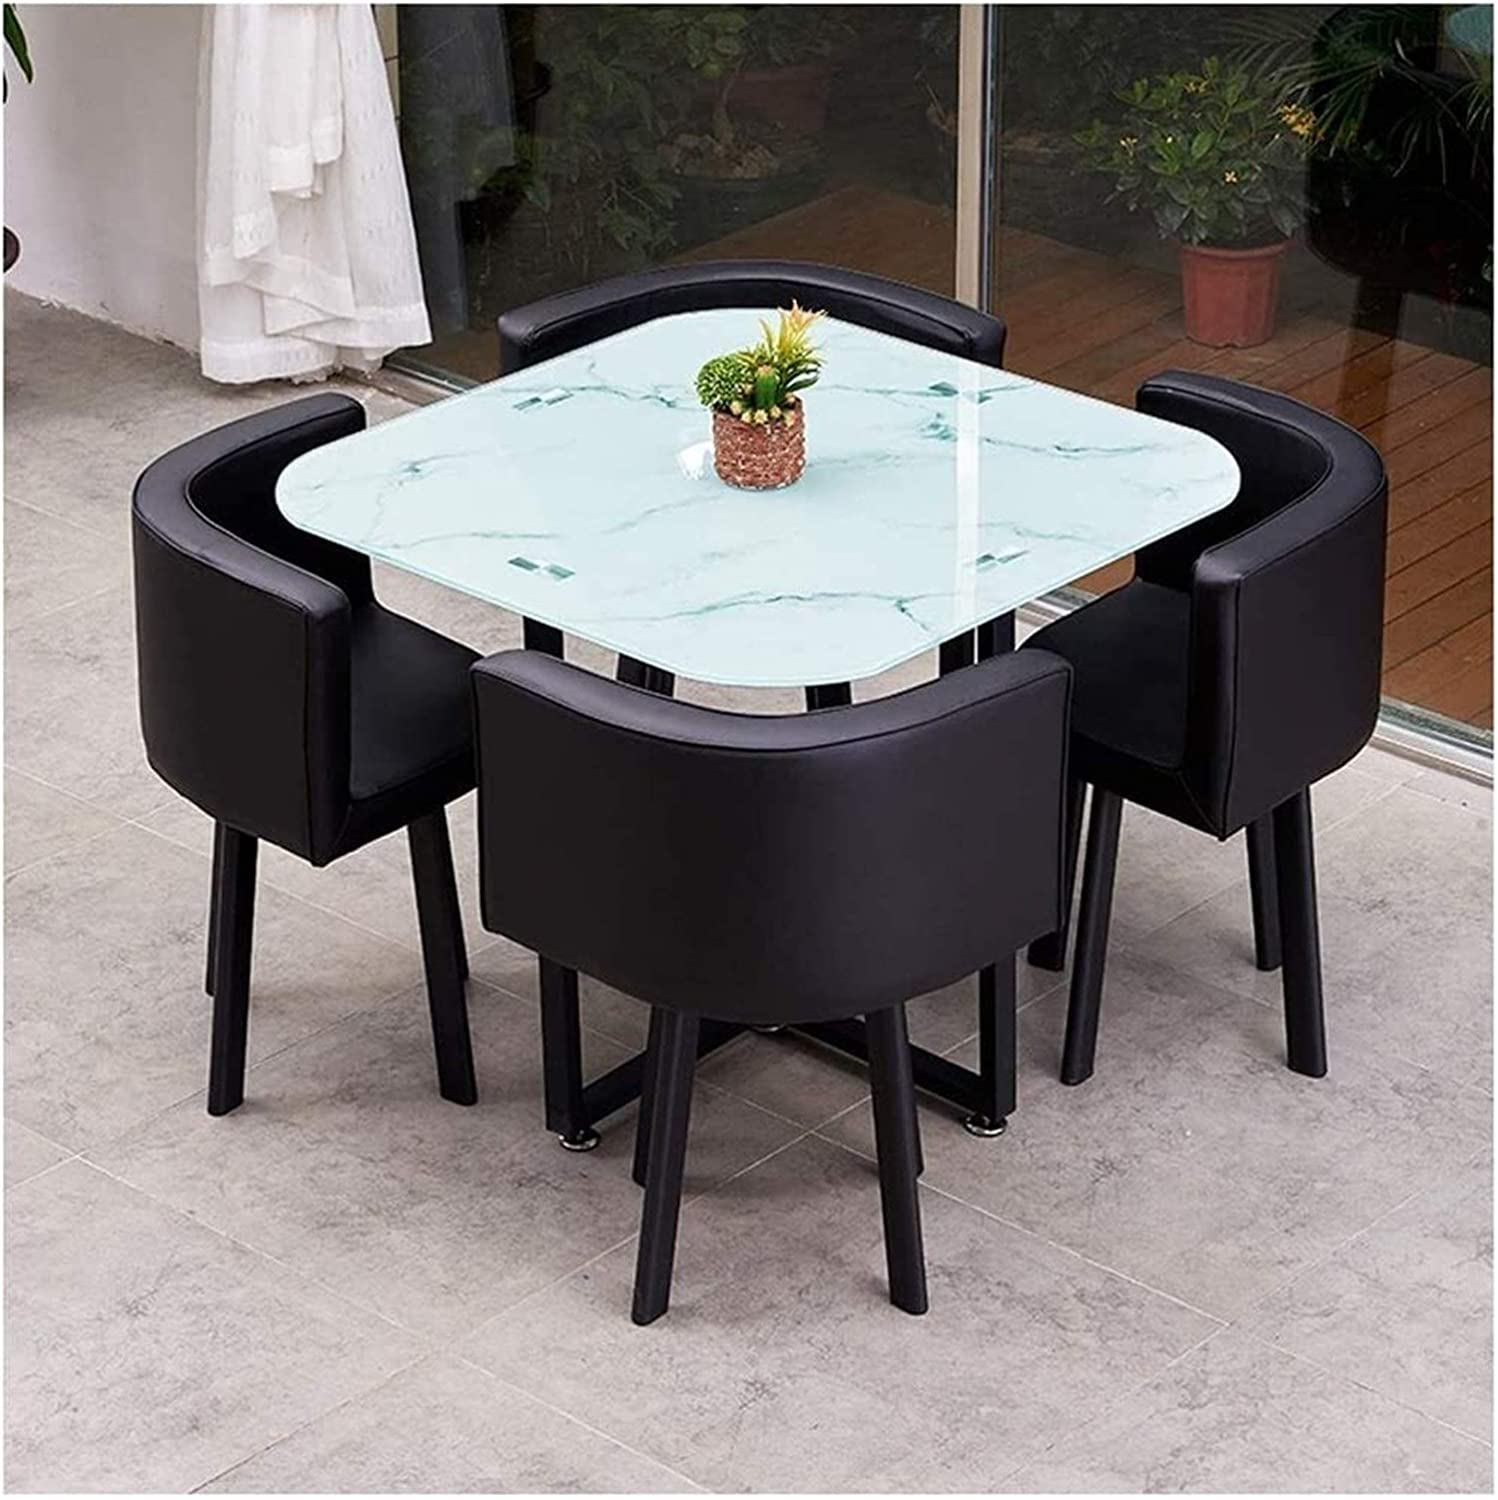 BDBT Popular overseas Modern Round Tempered Ranking TOP4 Glass Dining Table 90 Leather Seat PU